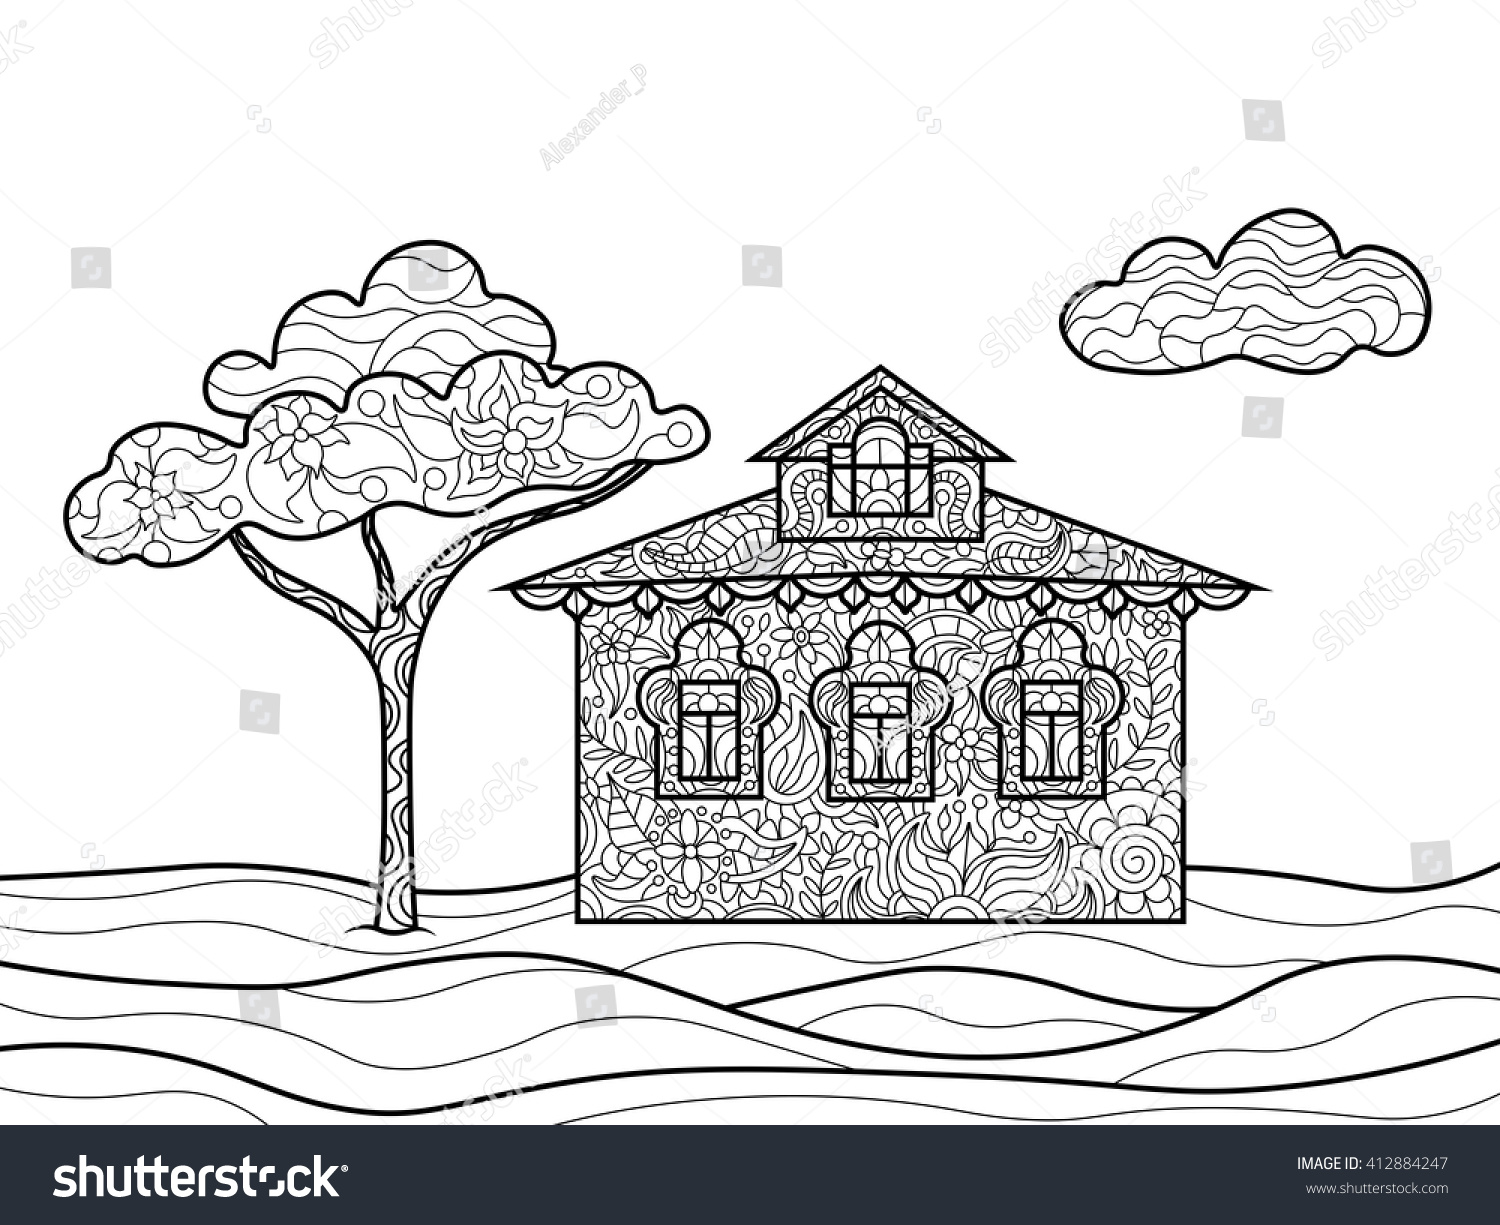 Coloring book landmark for adults - House Building Coloring Book For Adults Vector Illustration Zentangle Style Black And White Lines